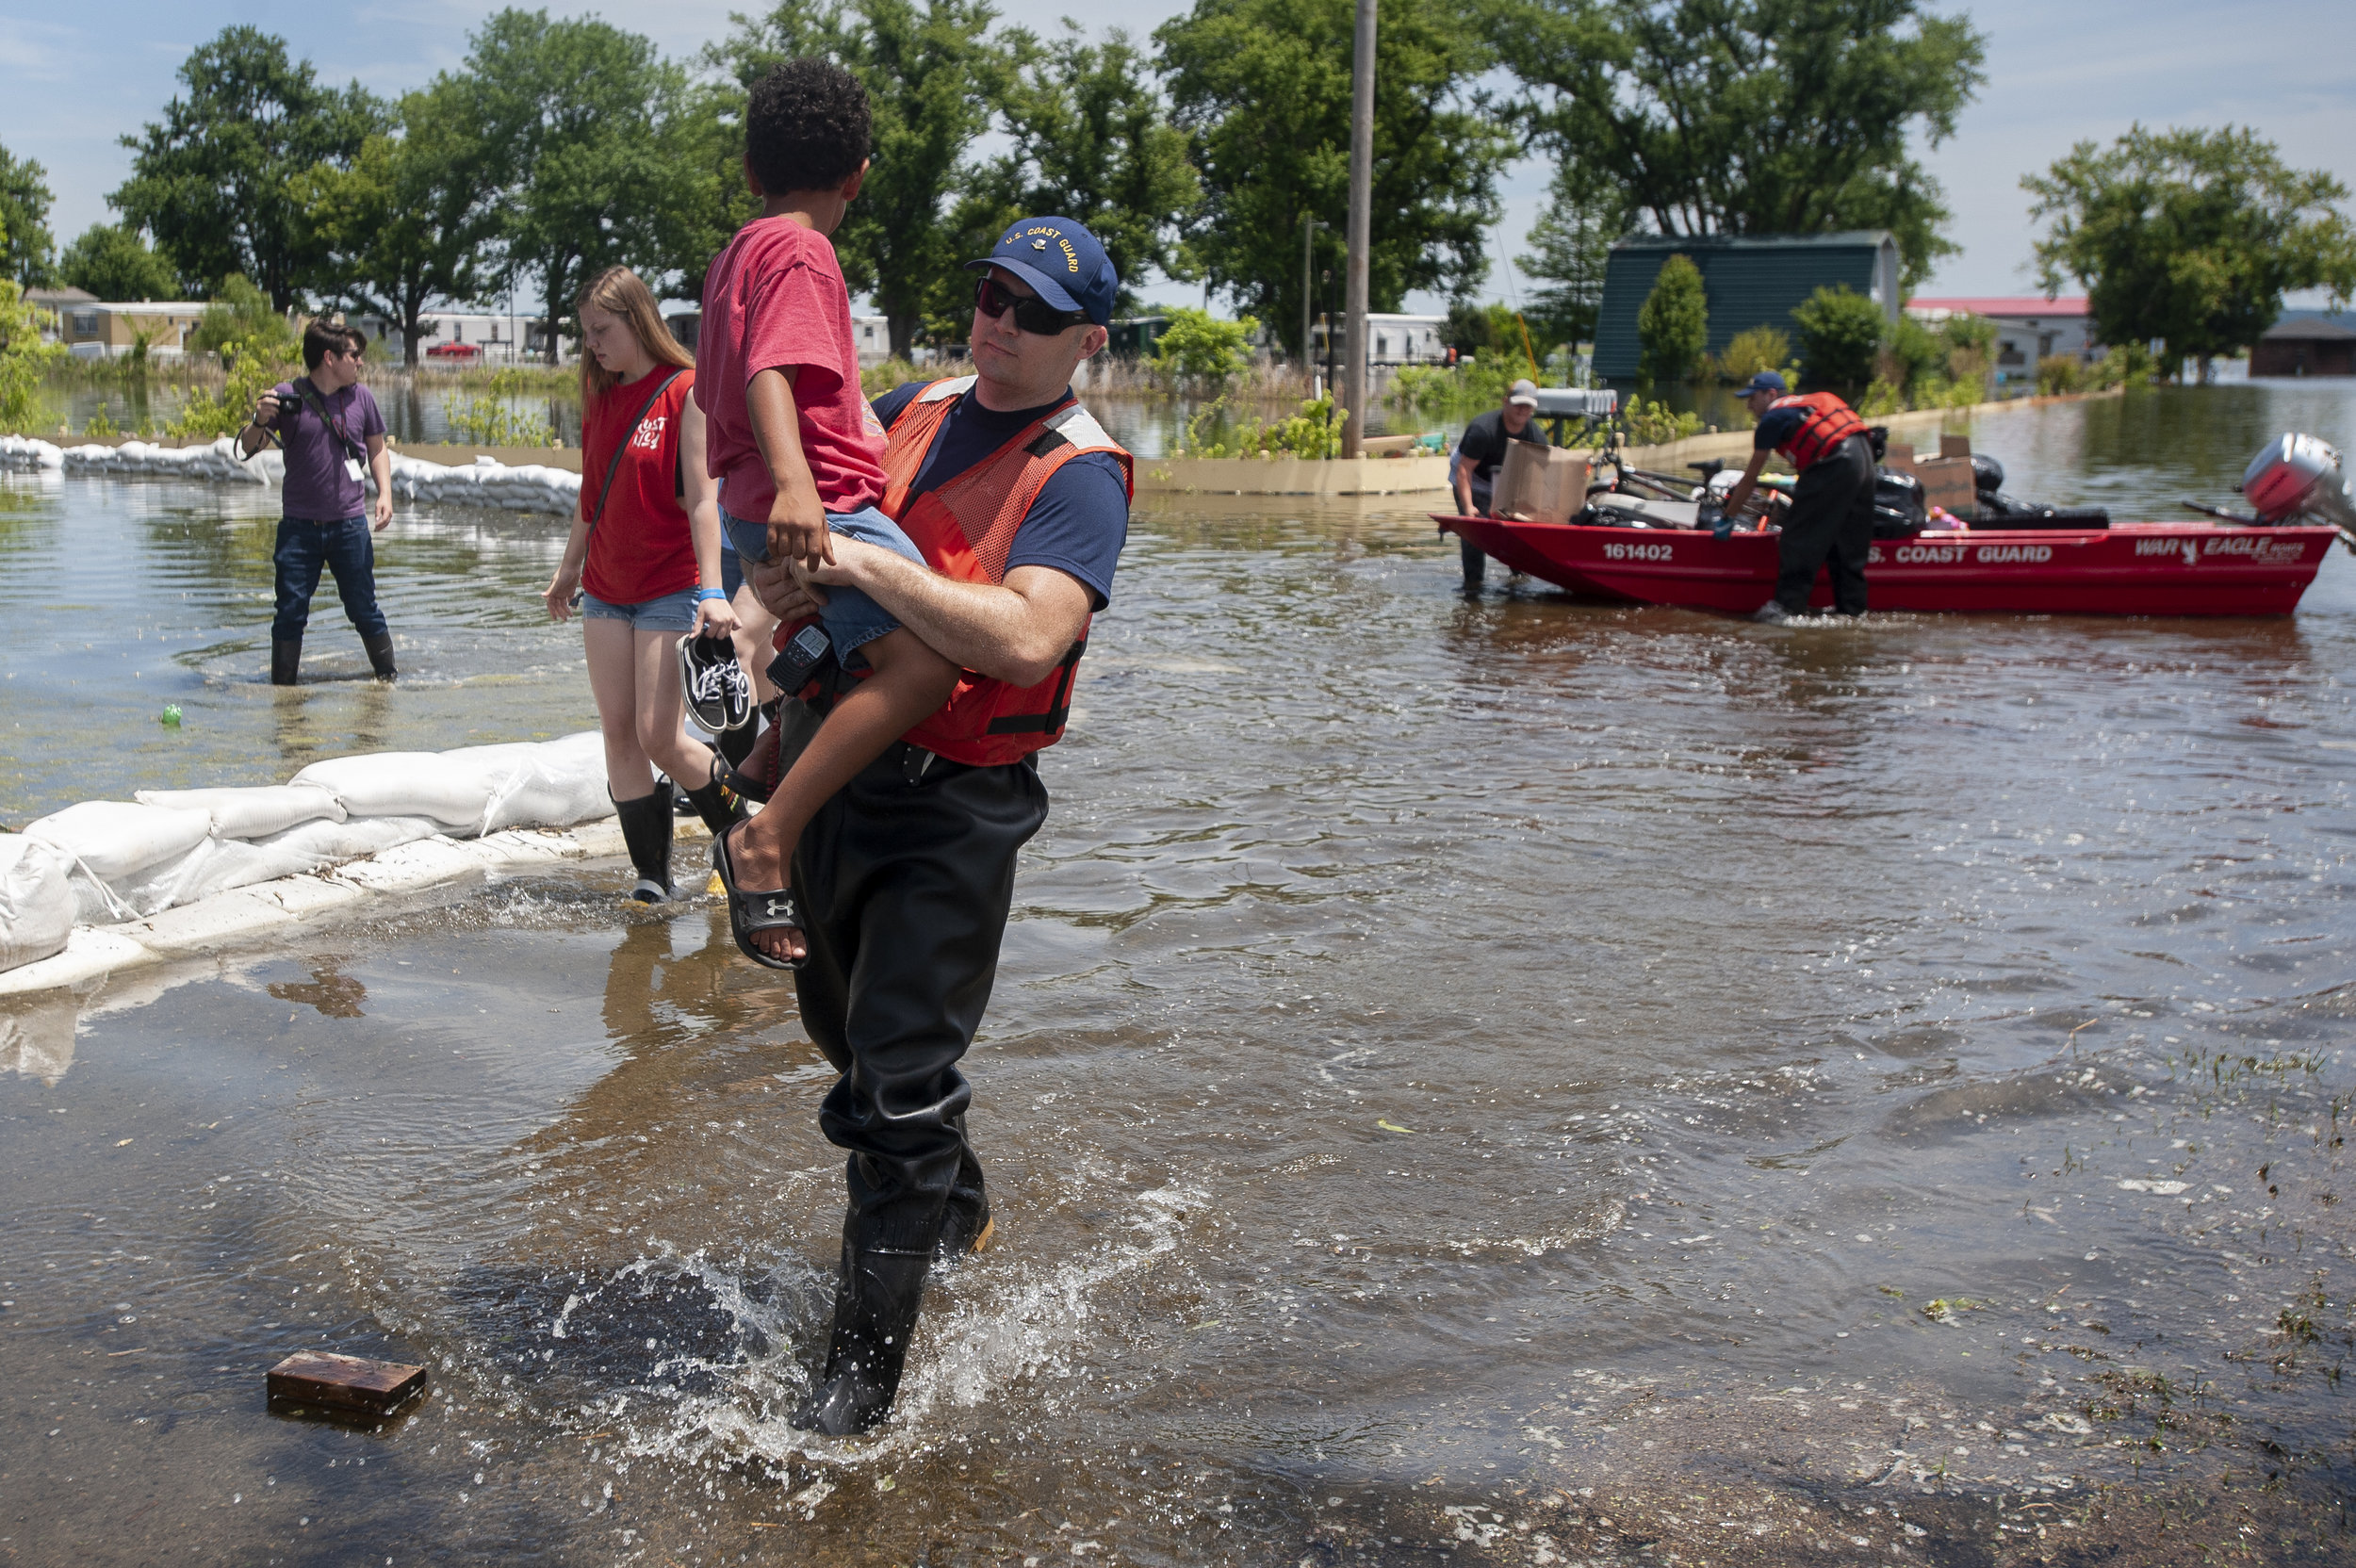 "Rich Lehman, of the U.S. Coast Guard, carries Izayah Gilbert, 7, a resident of trailer park on the northeast side of East Cape Girardeau, Illinois, next to Aubrey Walters, 15, also a trailer park resident, as the trailer park evacuates Tuesday, June 11, 2019, in East Cape Girardeau. ""We have nowhere to really turn,"" trailer park resident Brandi Walters said. ""I have a couple friends that is willing to open their home to us."" Walters, who lives with her daughter and boyfriend, said they are staying with friends Tuesday night. In response to area flooding, an American Red Cross shelter opened Tuesday at Spark Ministries Church at 40842 Illinois Route 3 in McClure, Illinois, according to a news release from American Red Cross of Missouri and Arkansas. Those coming to the shelter should bring: a few days worth of clothing, bedding including pillows and blankets, toiletries, essential medication and items for children. Jacob Wiegand 